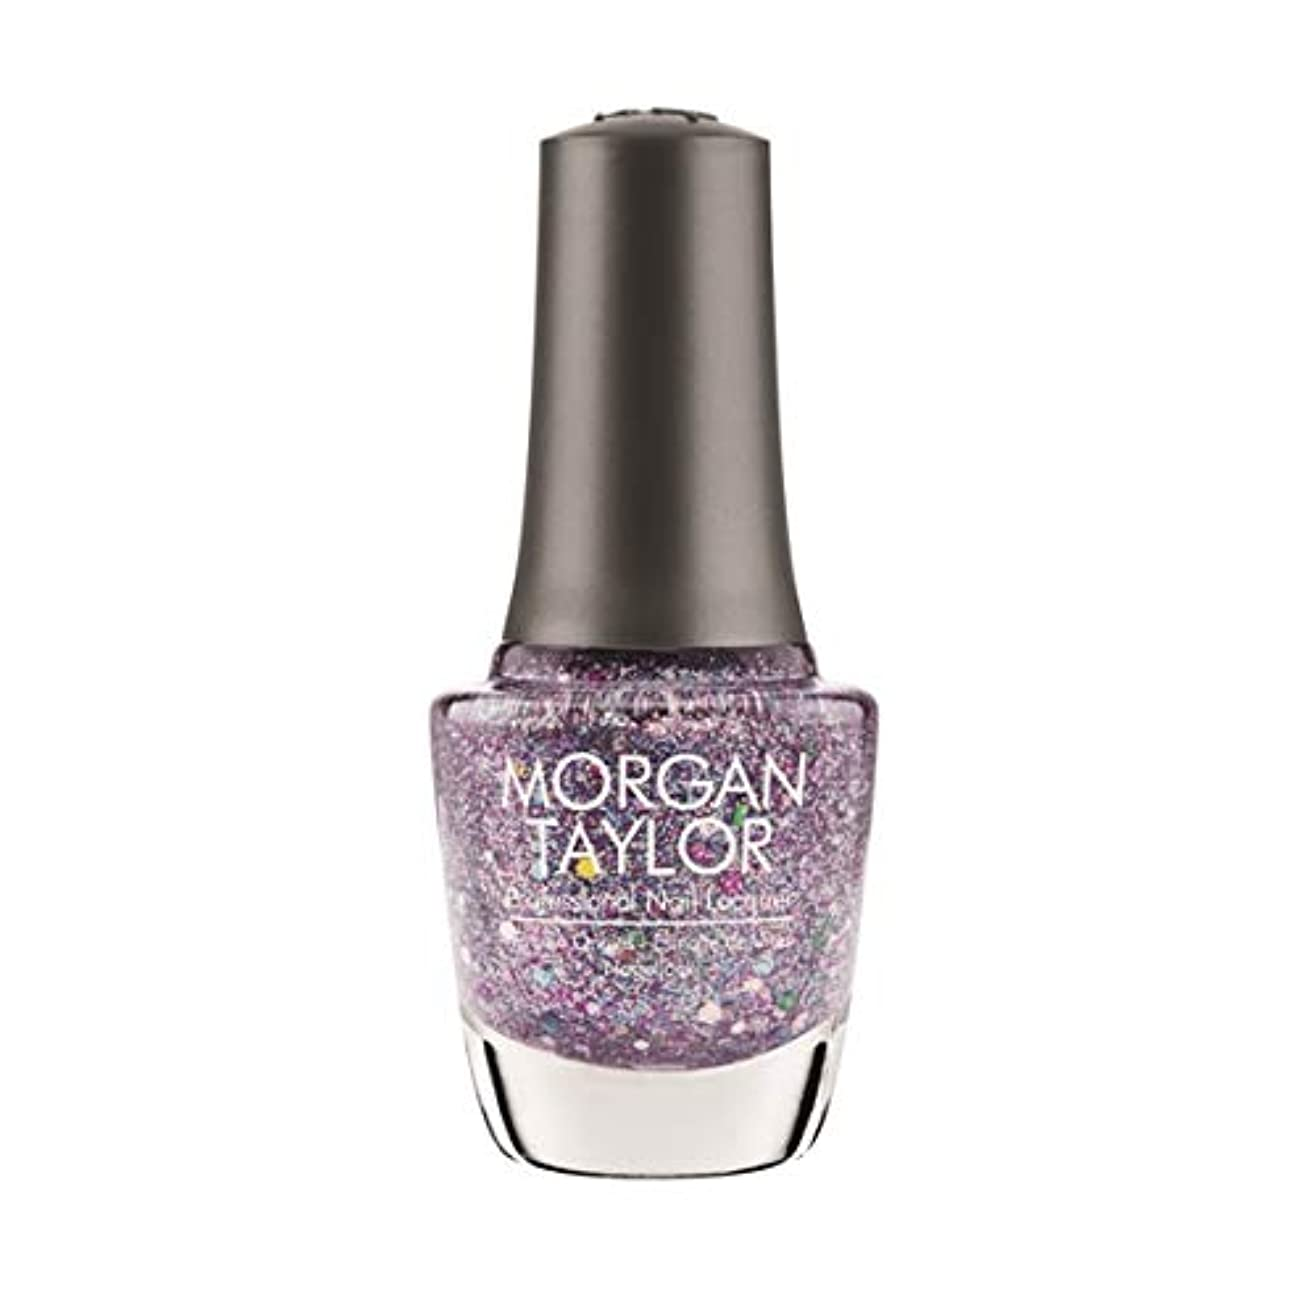 Morgan Taylor Nail Lacquer - Rocketman Collection - Bedazzle Me - 15ml / 0.5oz